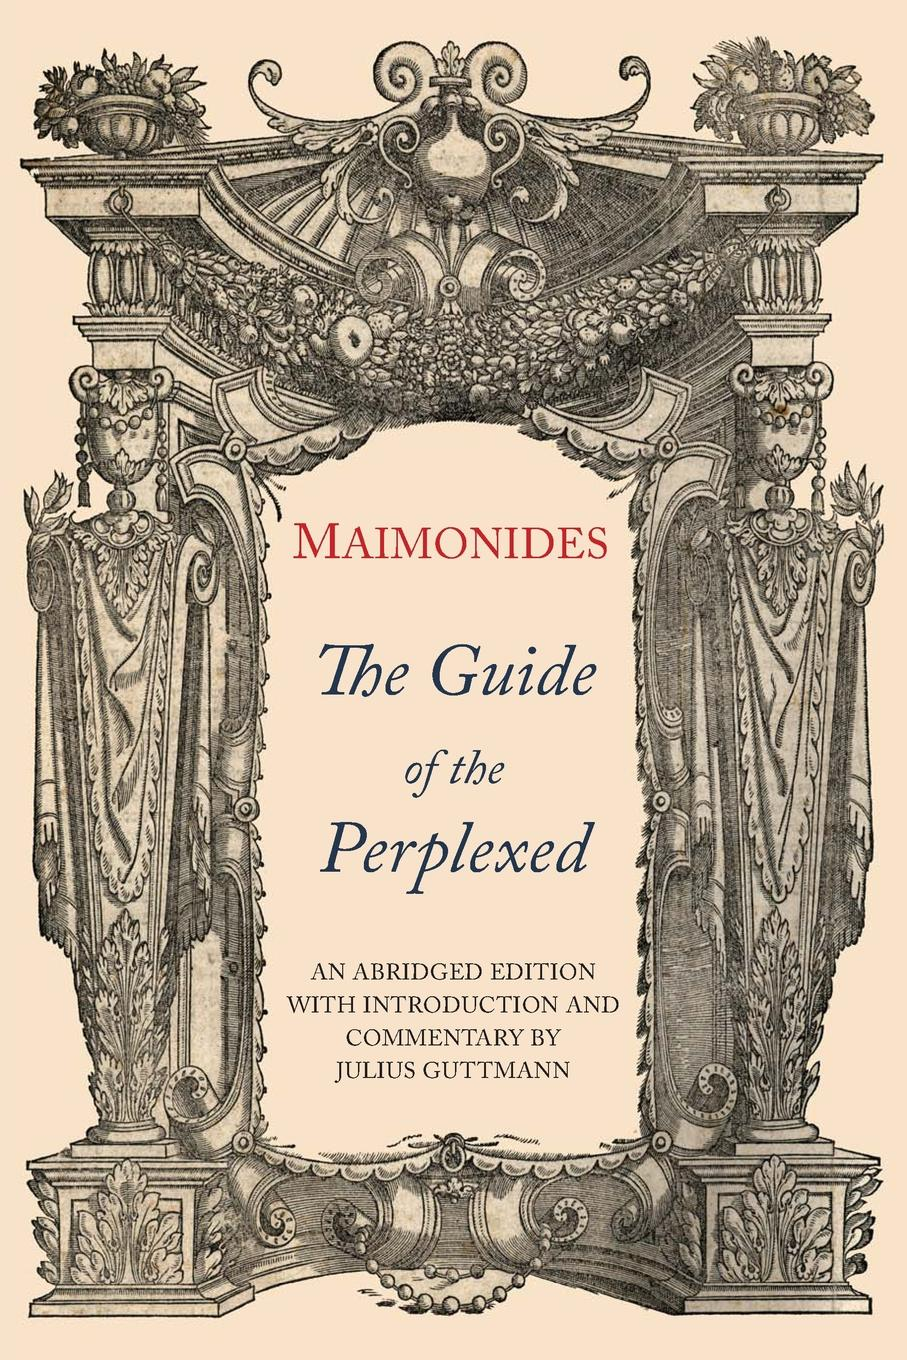 Moses Maimonides, Chaim Rabin The Guide of the Perplexed. Abridged Edition kenneth seeskin maimonides on the origin of the world